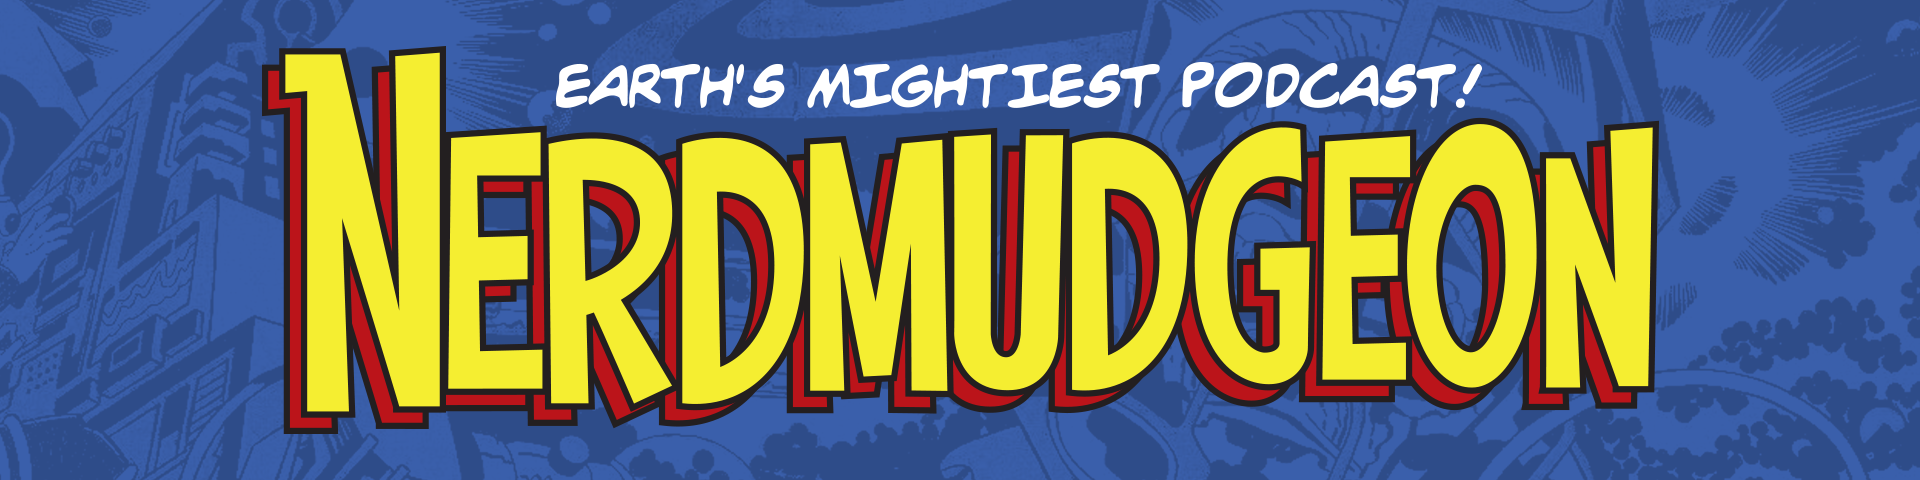 Earth's Mightiest Podcast: Nerdmudgeon